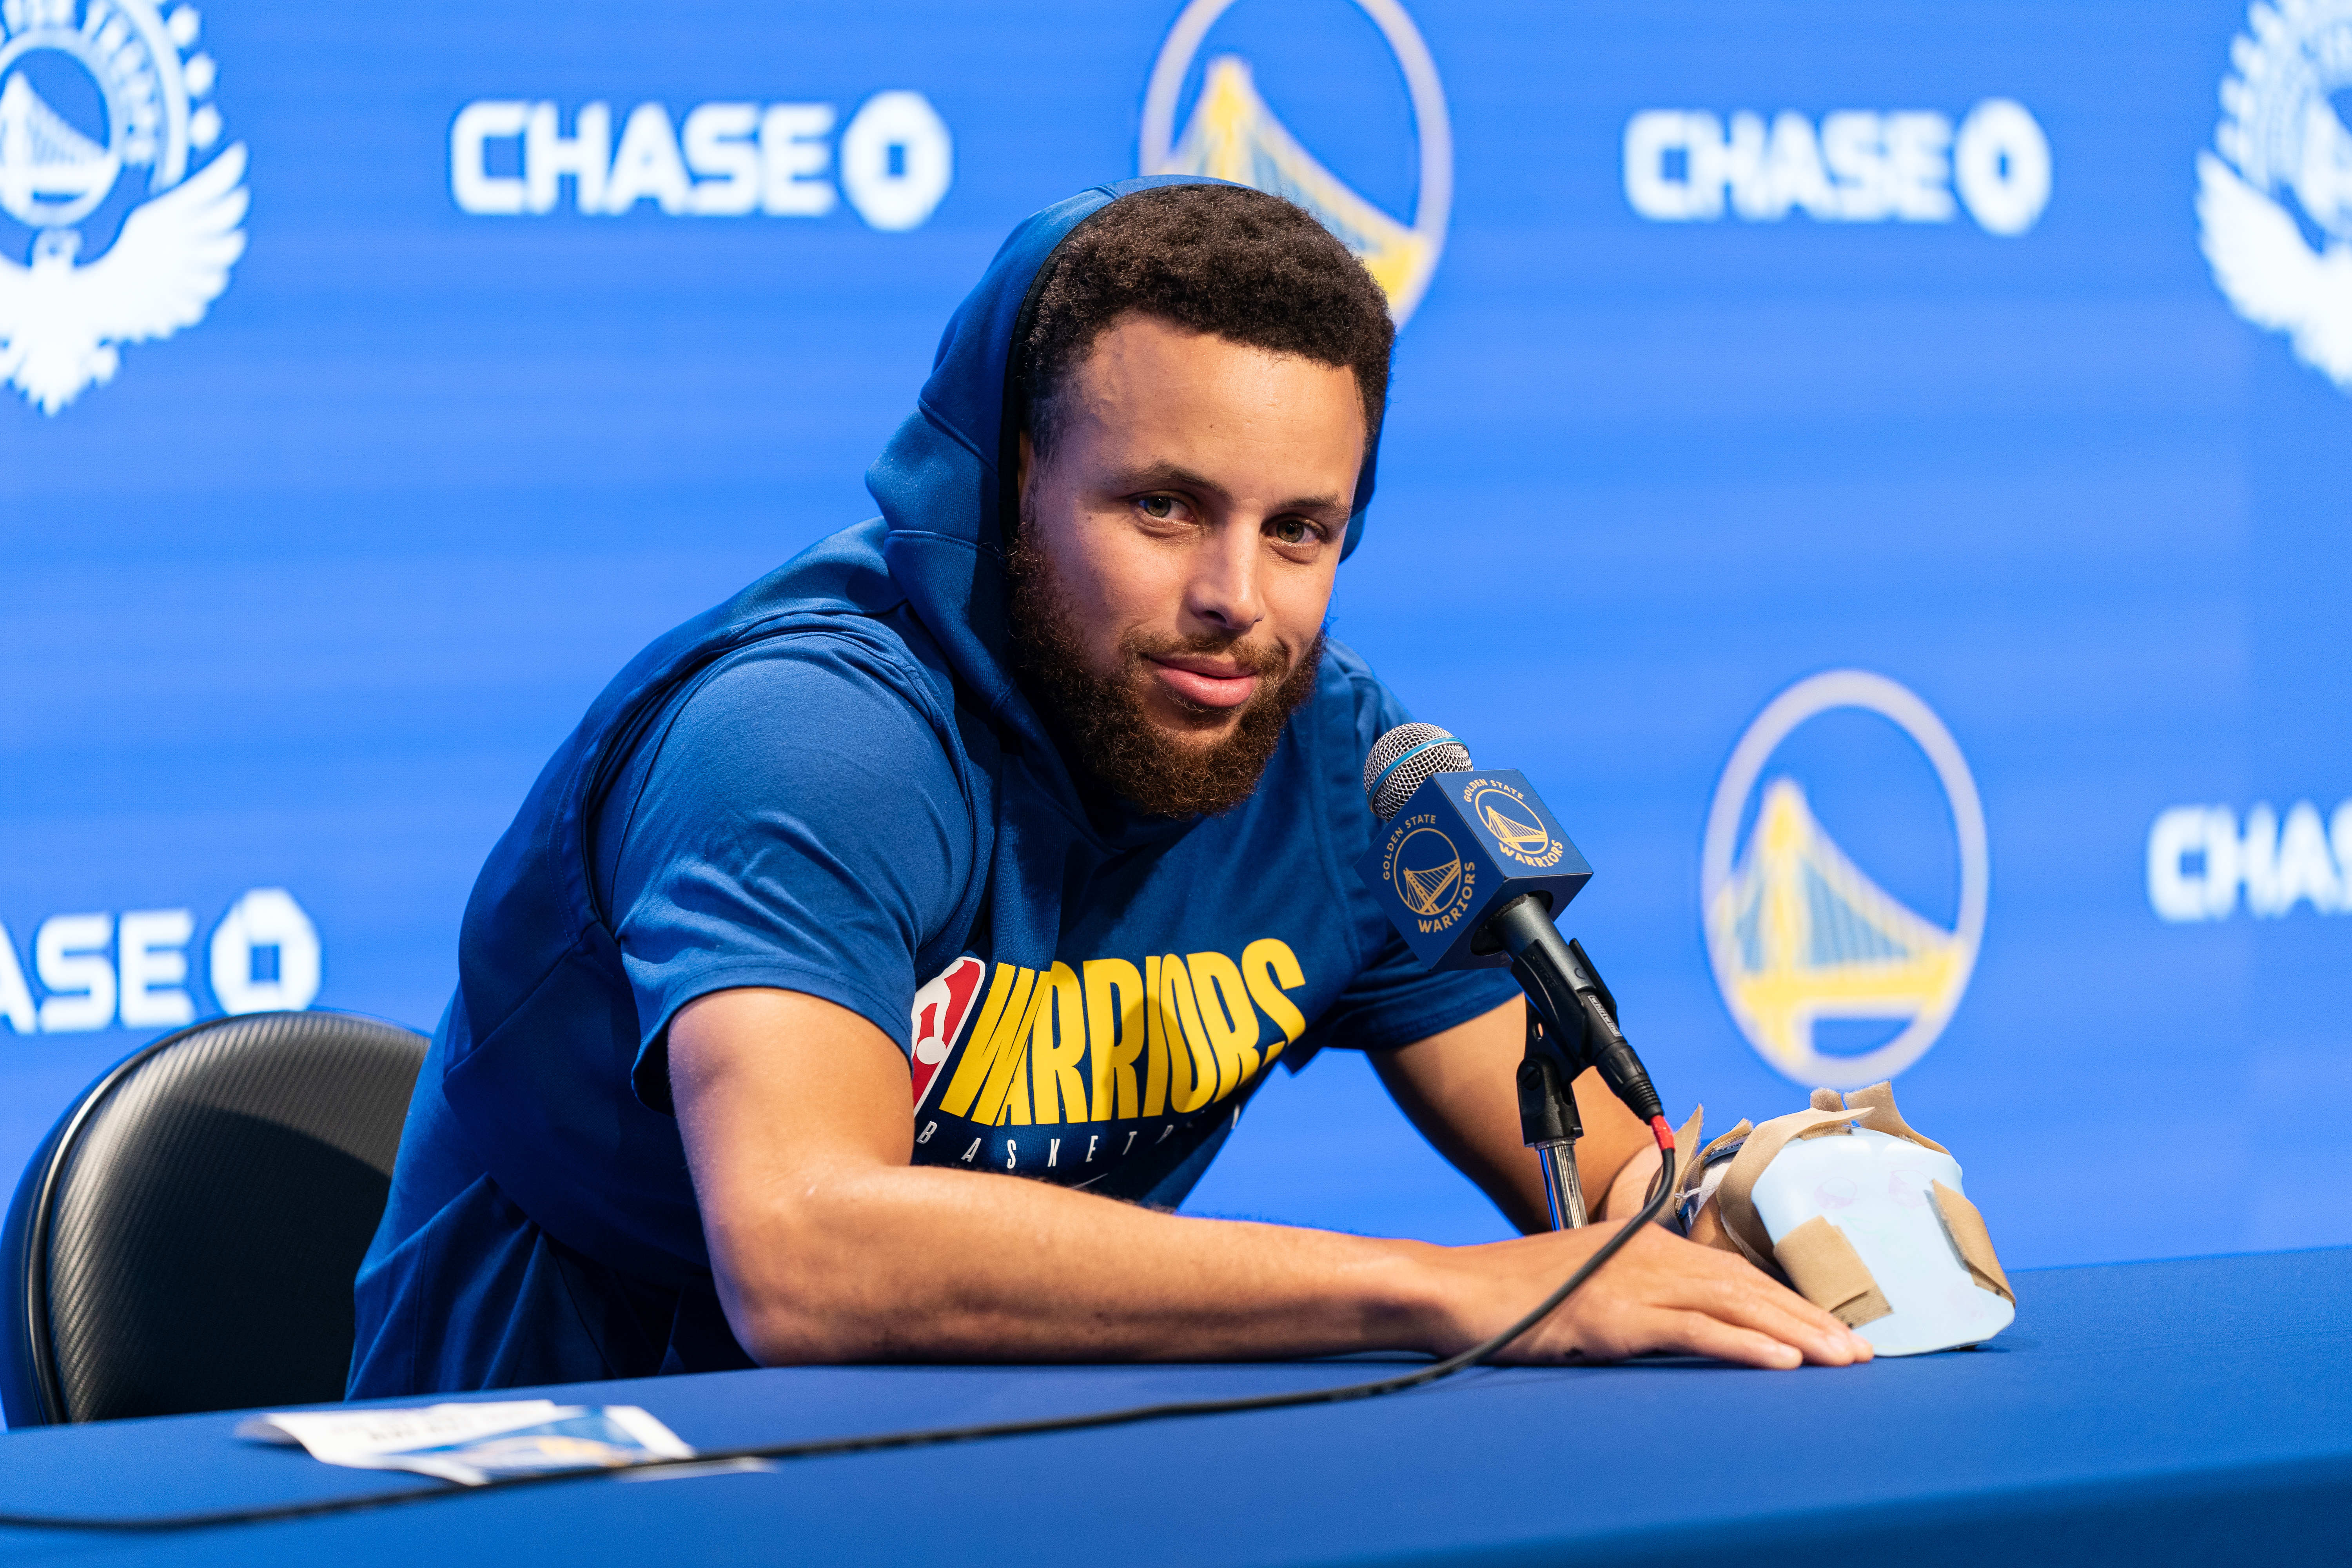 Under Armour launches brand with Stephen Curry, trying to compete with Jordan Brand